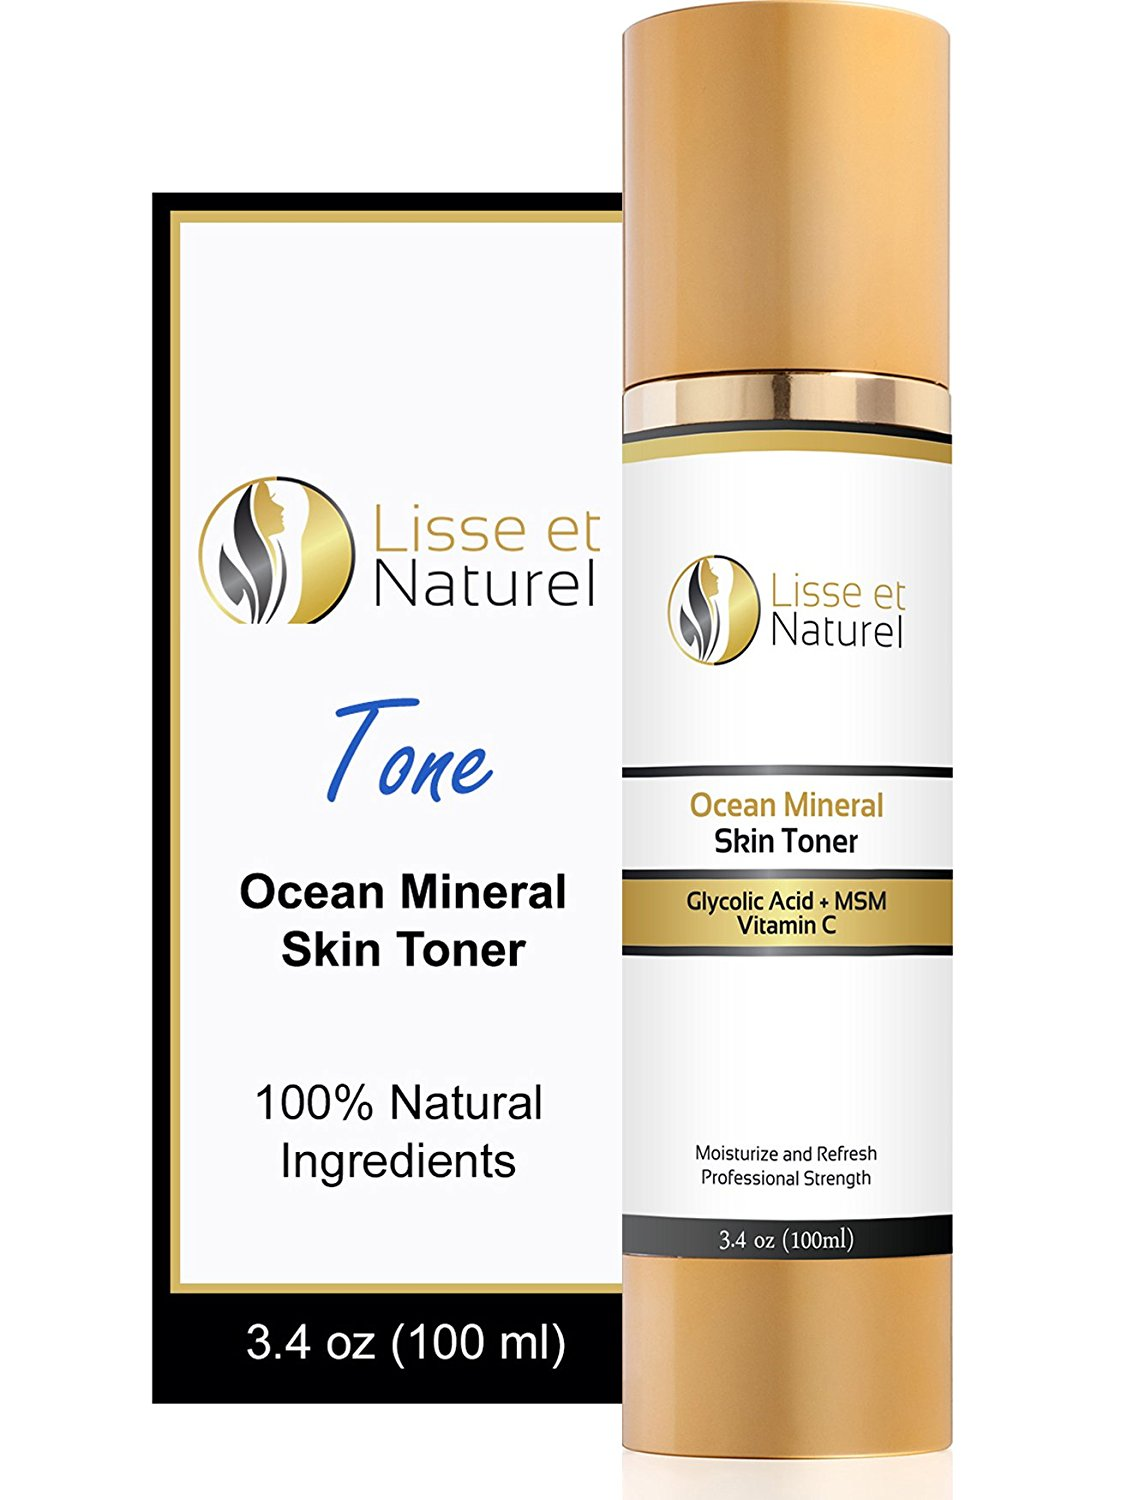 Lisse et Naturel Ocean Mineral Skin Toner - 100% Natural and Organic Anti Aging Face Toner With Vitamin C, Glycolic Acid, MSM & More - Nourishes and Hydrates The Skin Deeply - 3.4 OZ Size